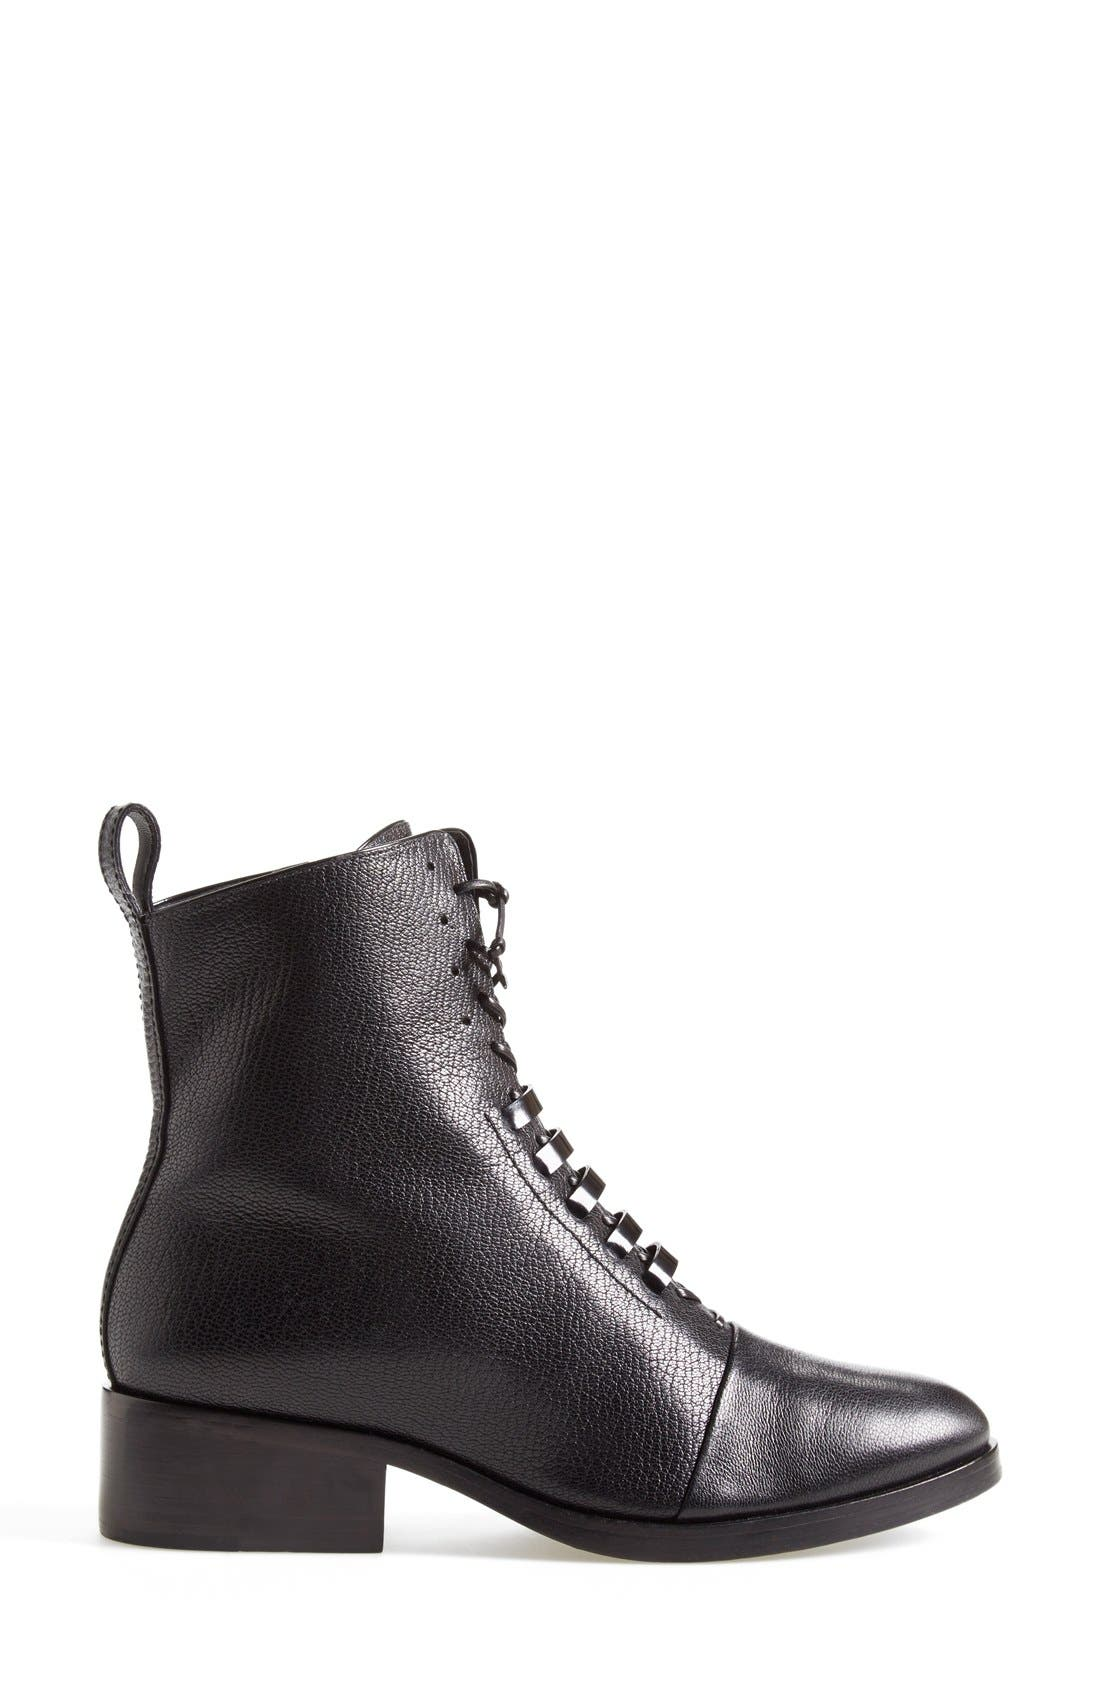 Alternate Image 4  - 3.1 Phillip Lim 'Alexa' Lace-Up Ankle Boot (Women)